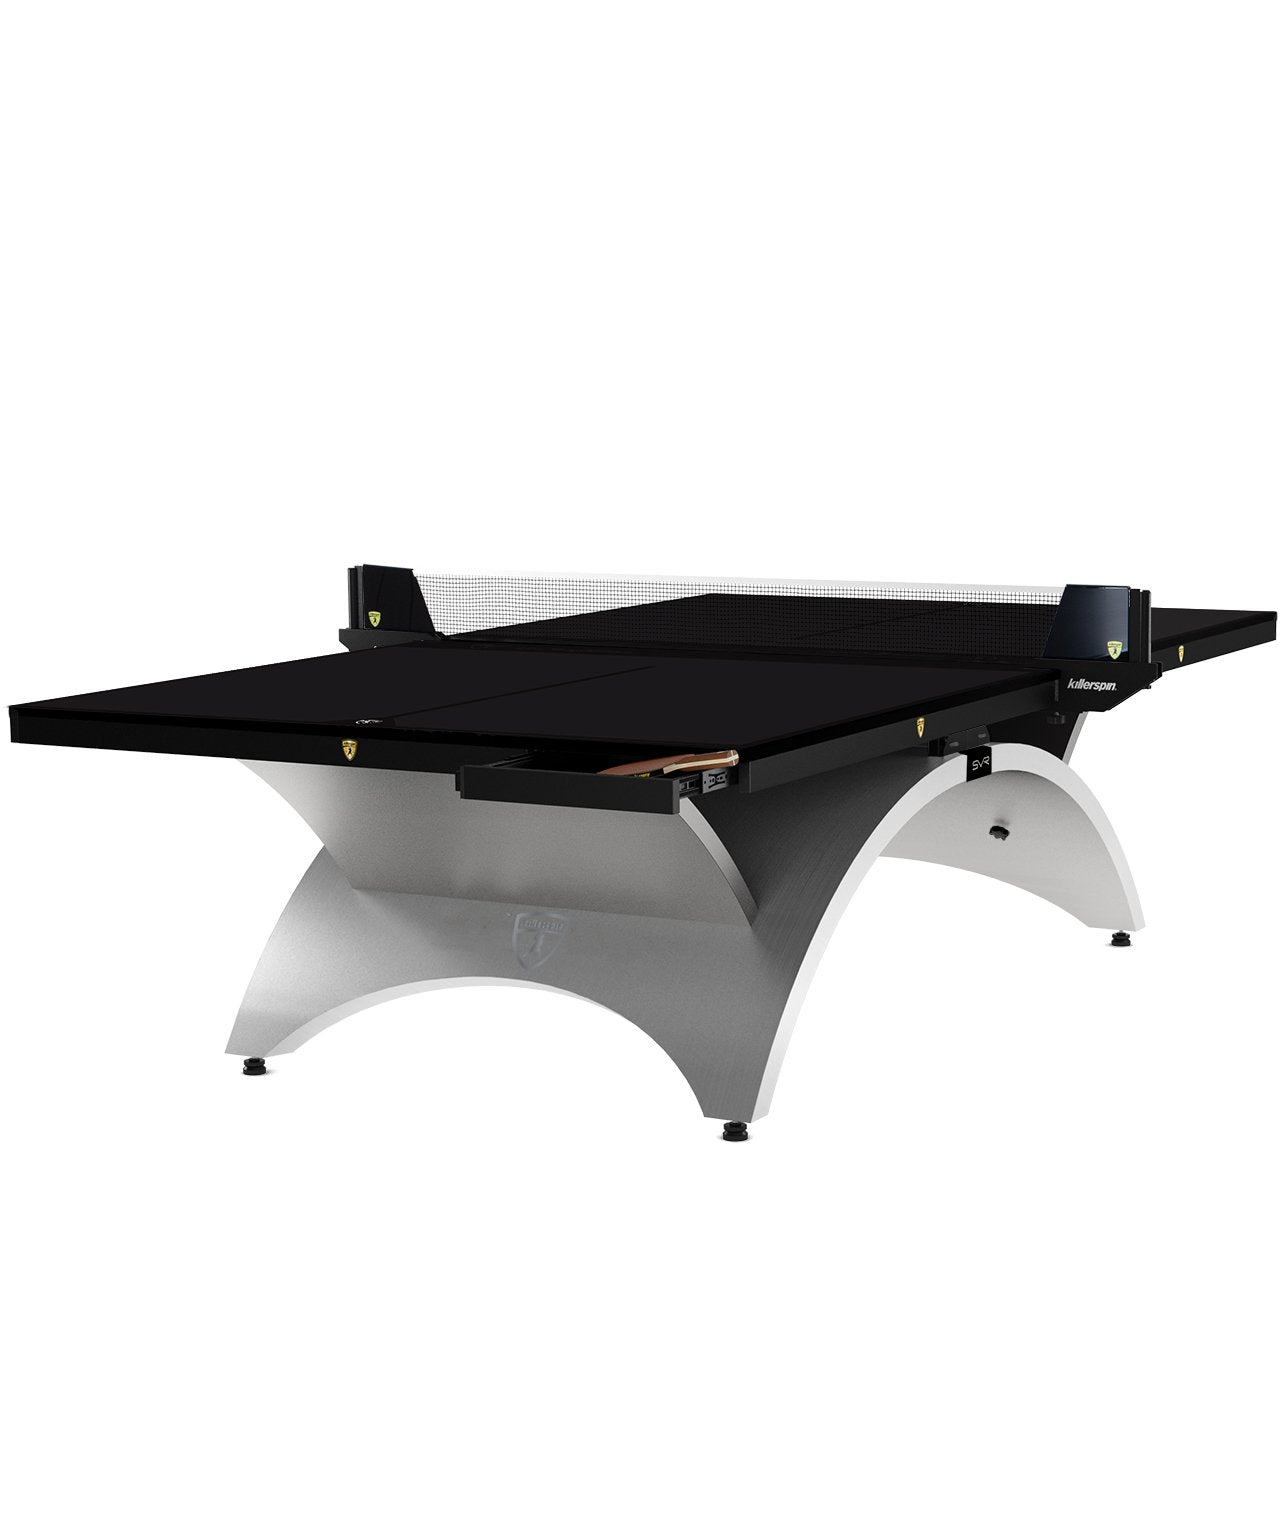 Killerspin Revolution SVR Platinum Black Indoor Table Tennis Ping Pong Table